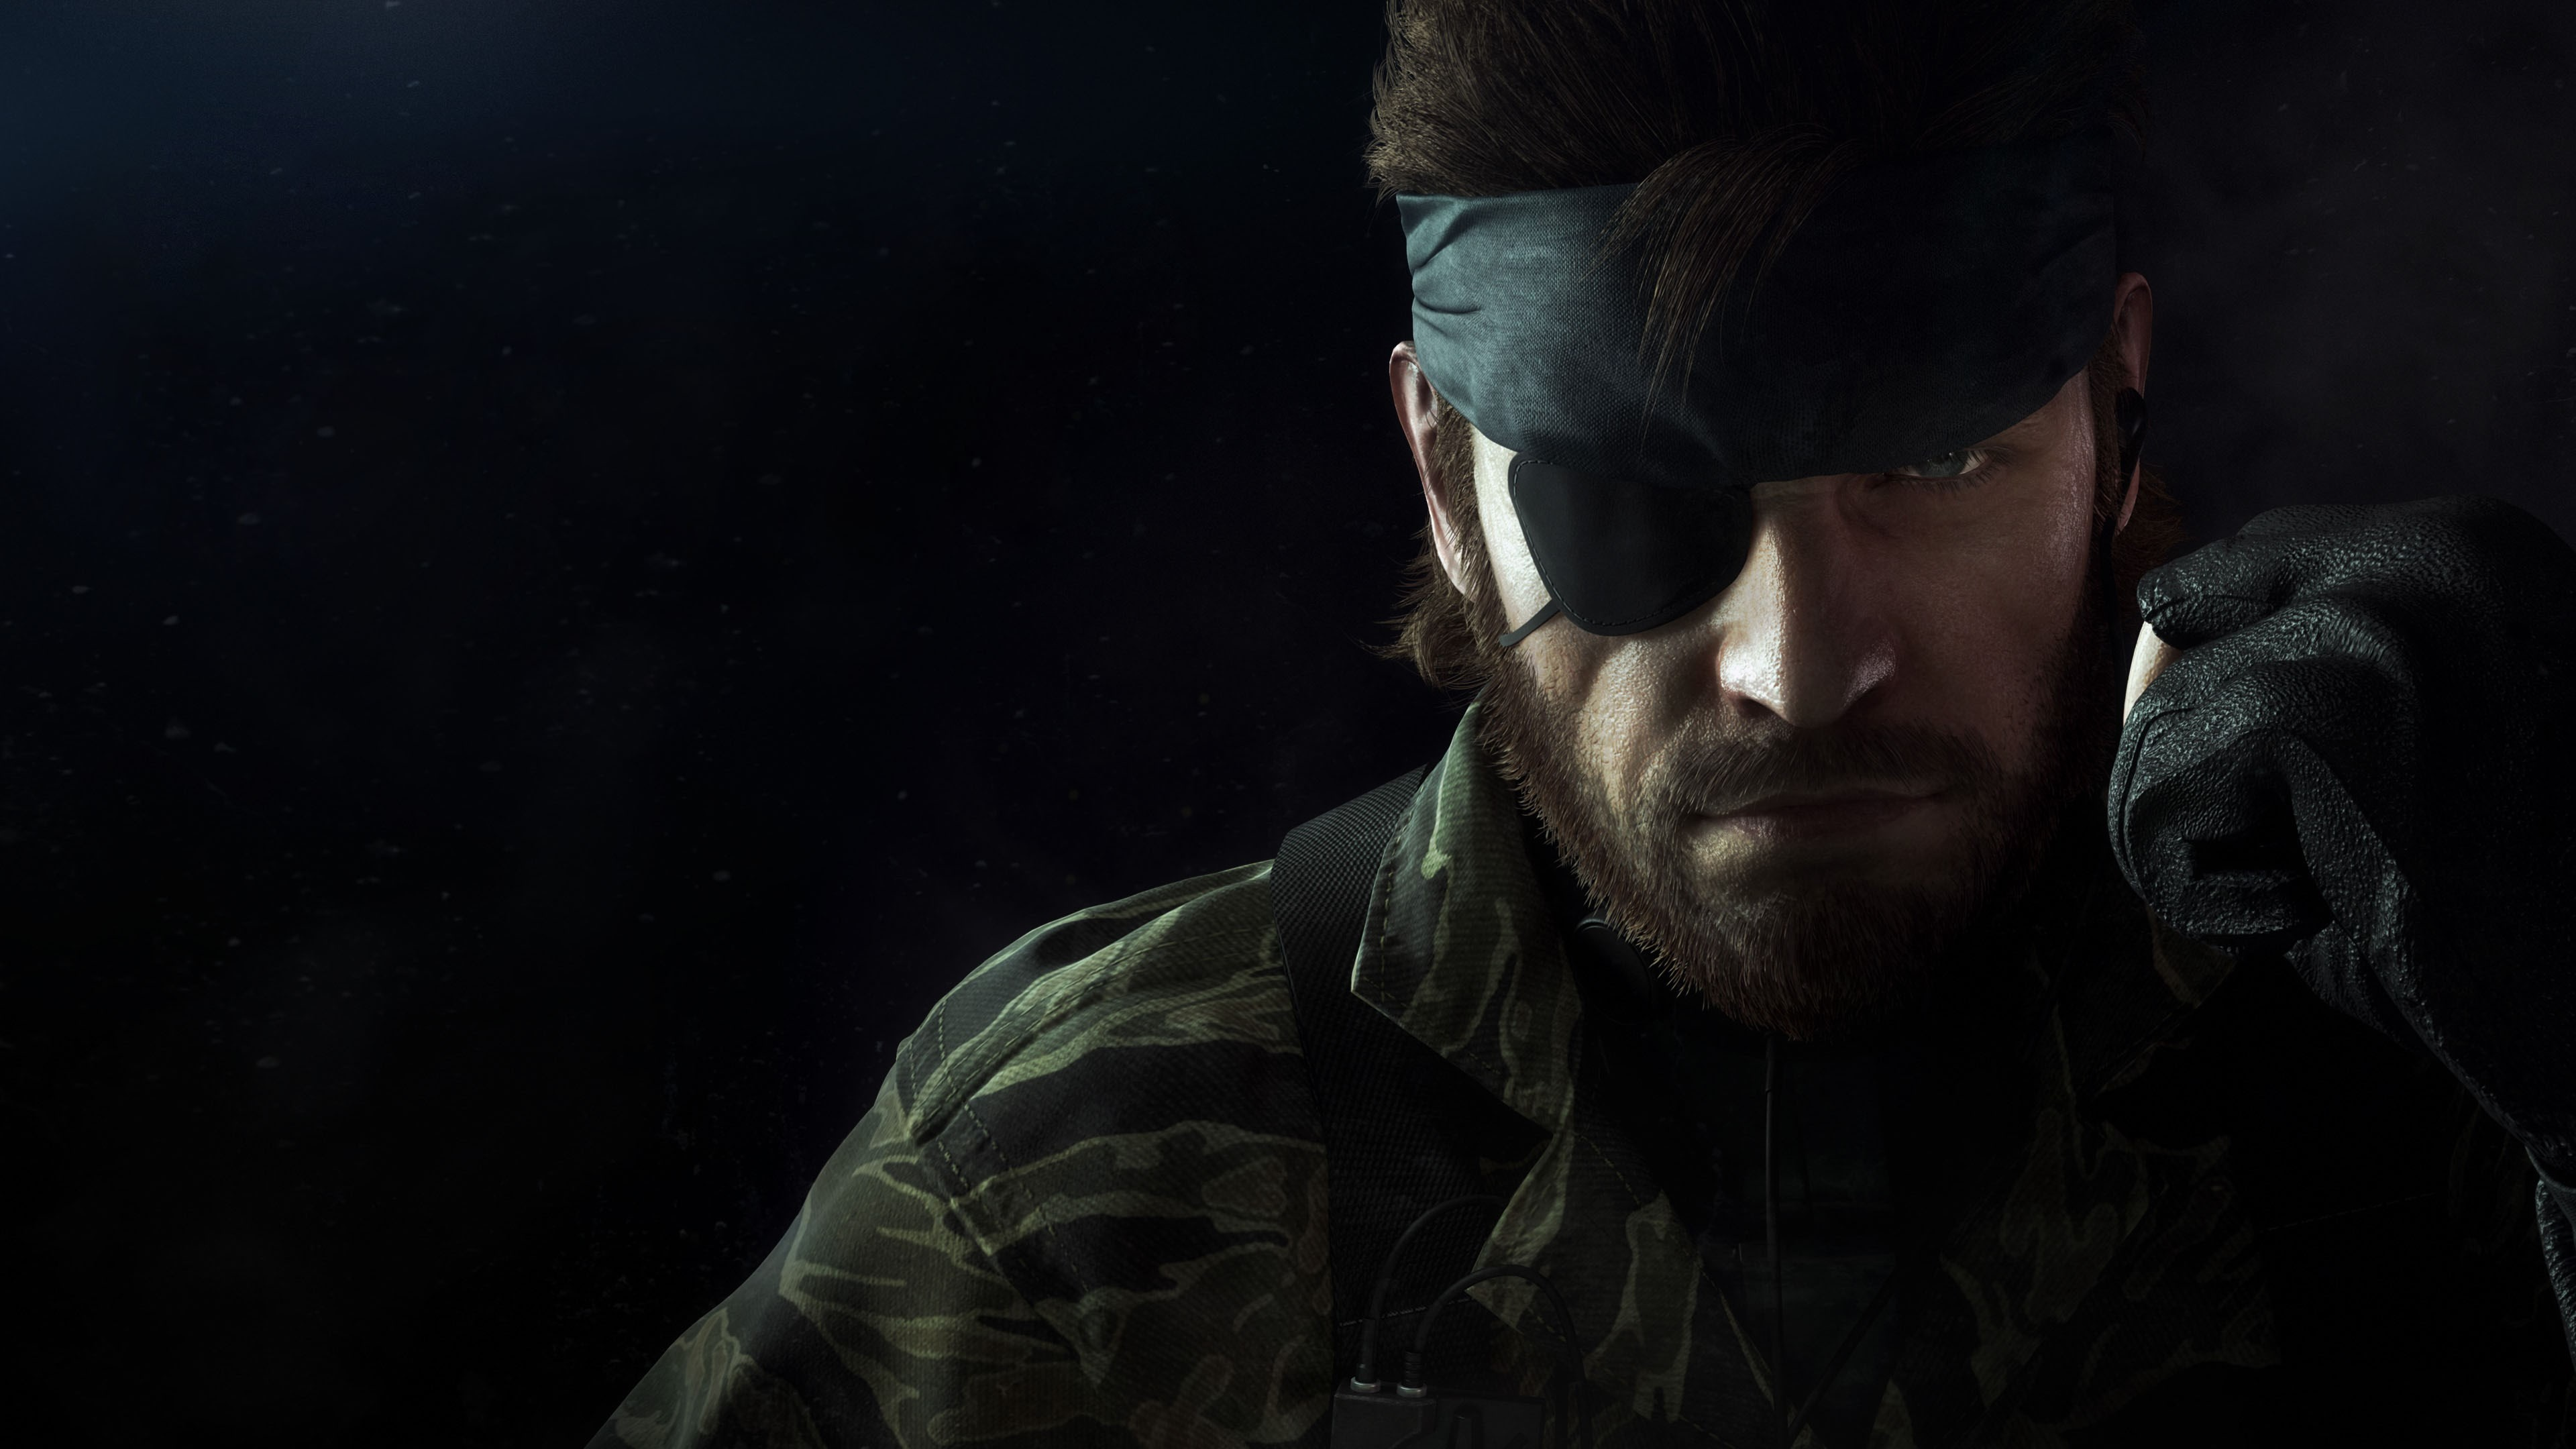 Images for Desktop: metal gear solid 3 snake eater picture, 586 kB –  Commodore